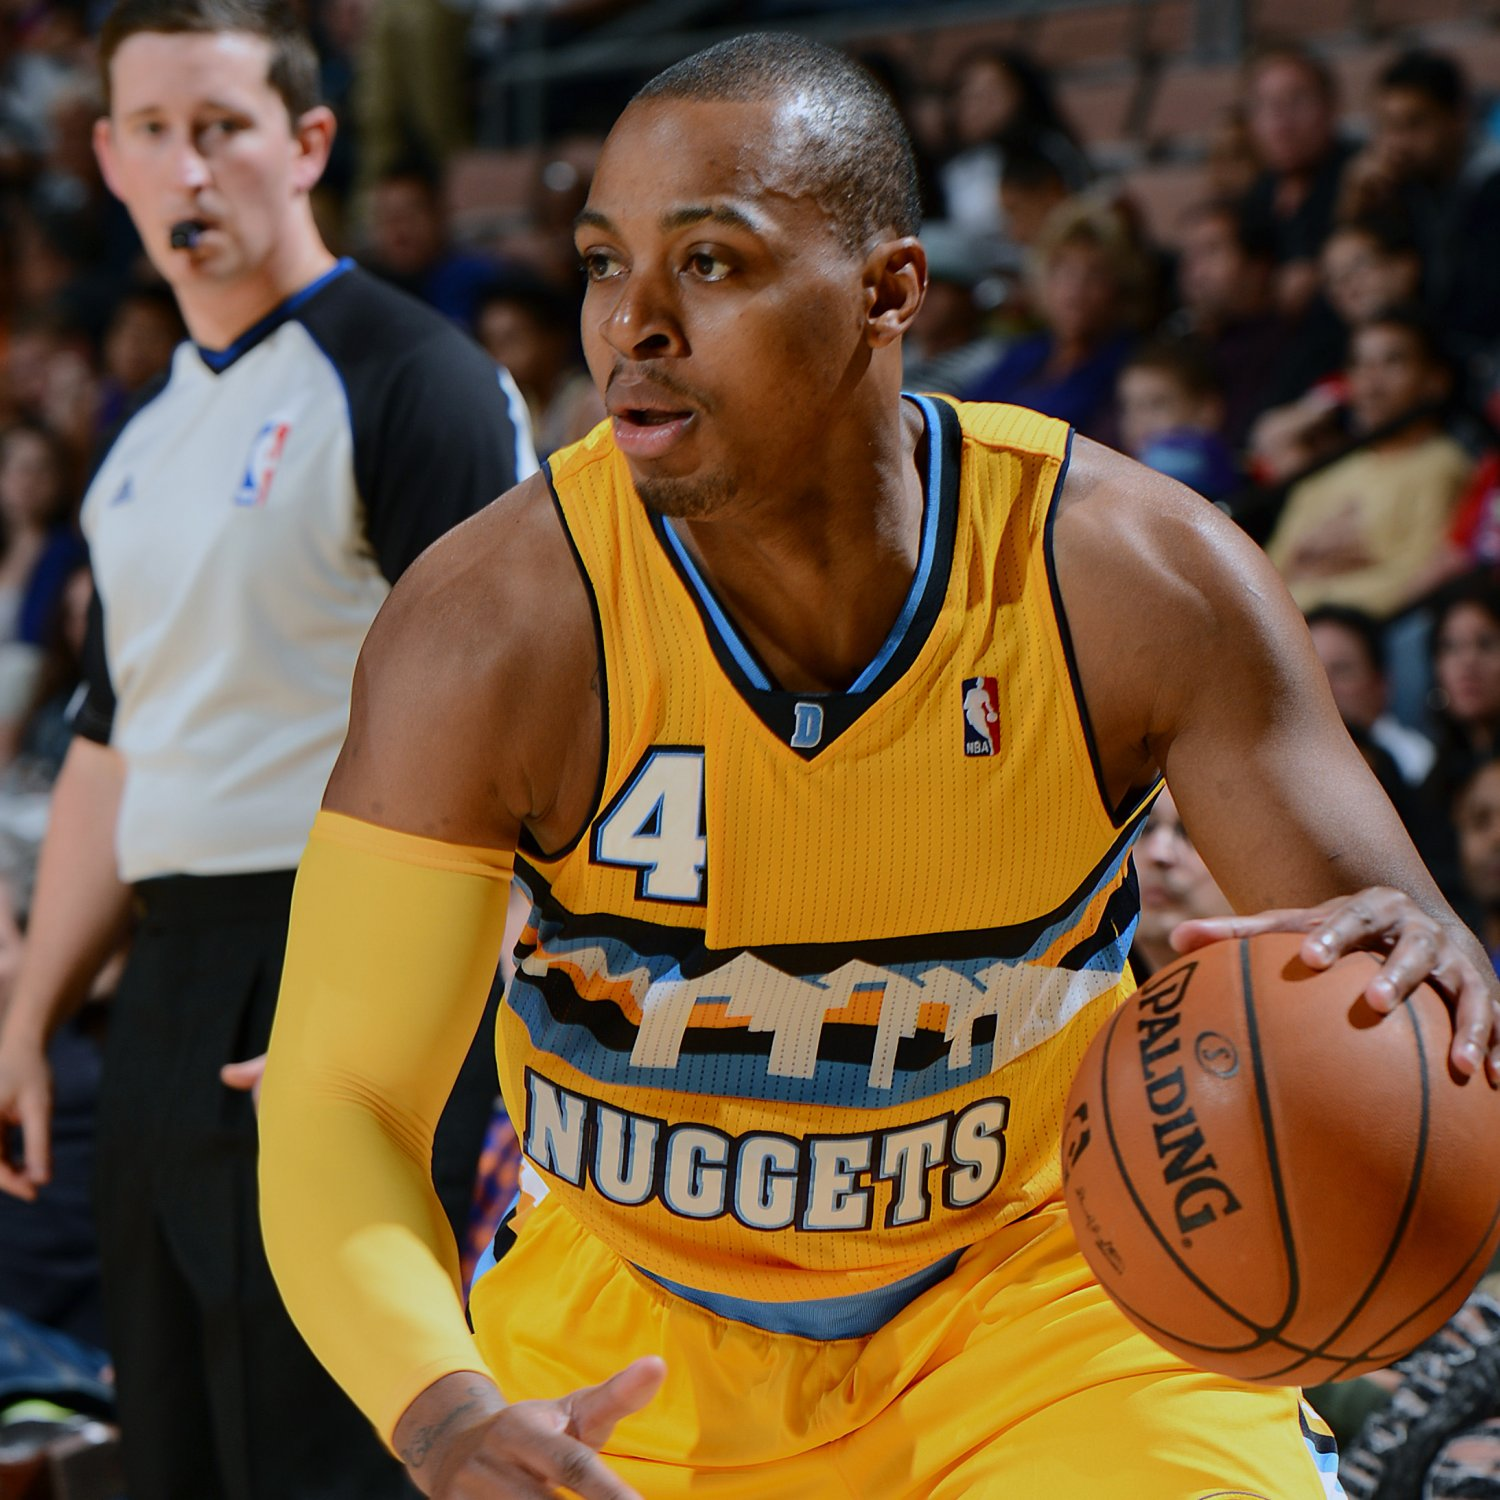 Nuggets' Randy Foye Rocks Leopard-Print Pants Before Game